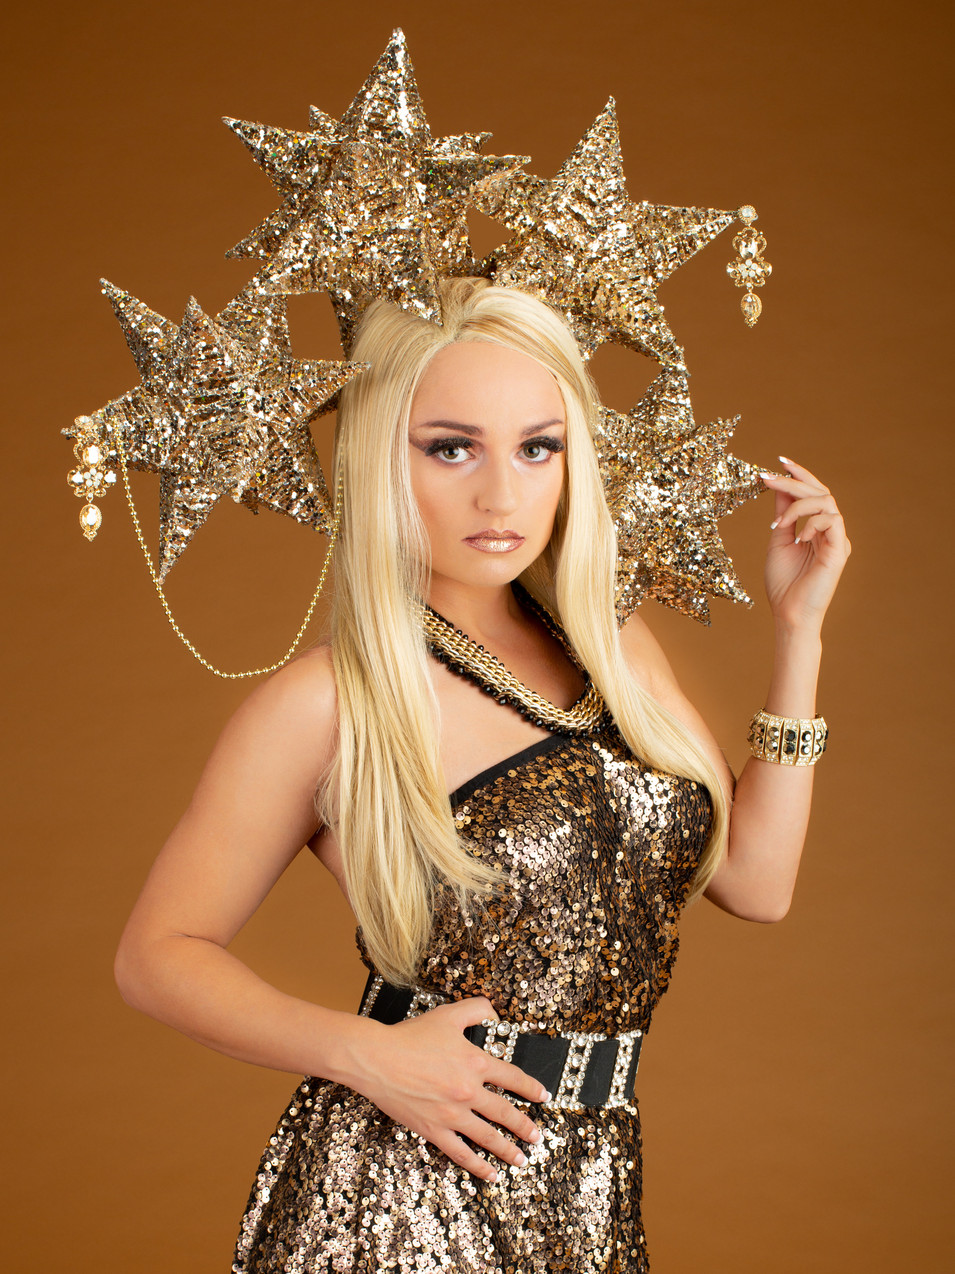 Creative portrait of blonde woman in gold costume with stars - Medford photographer, John Neilson